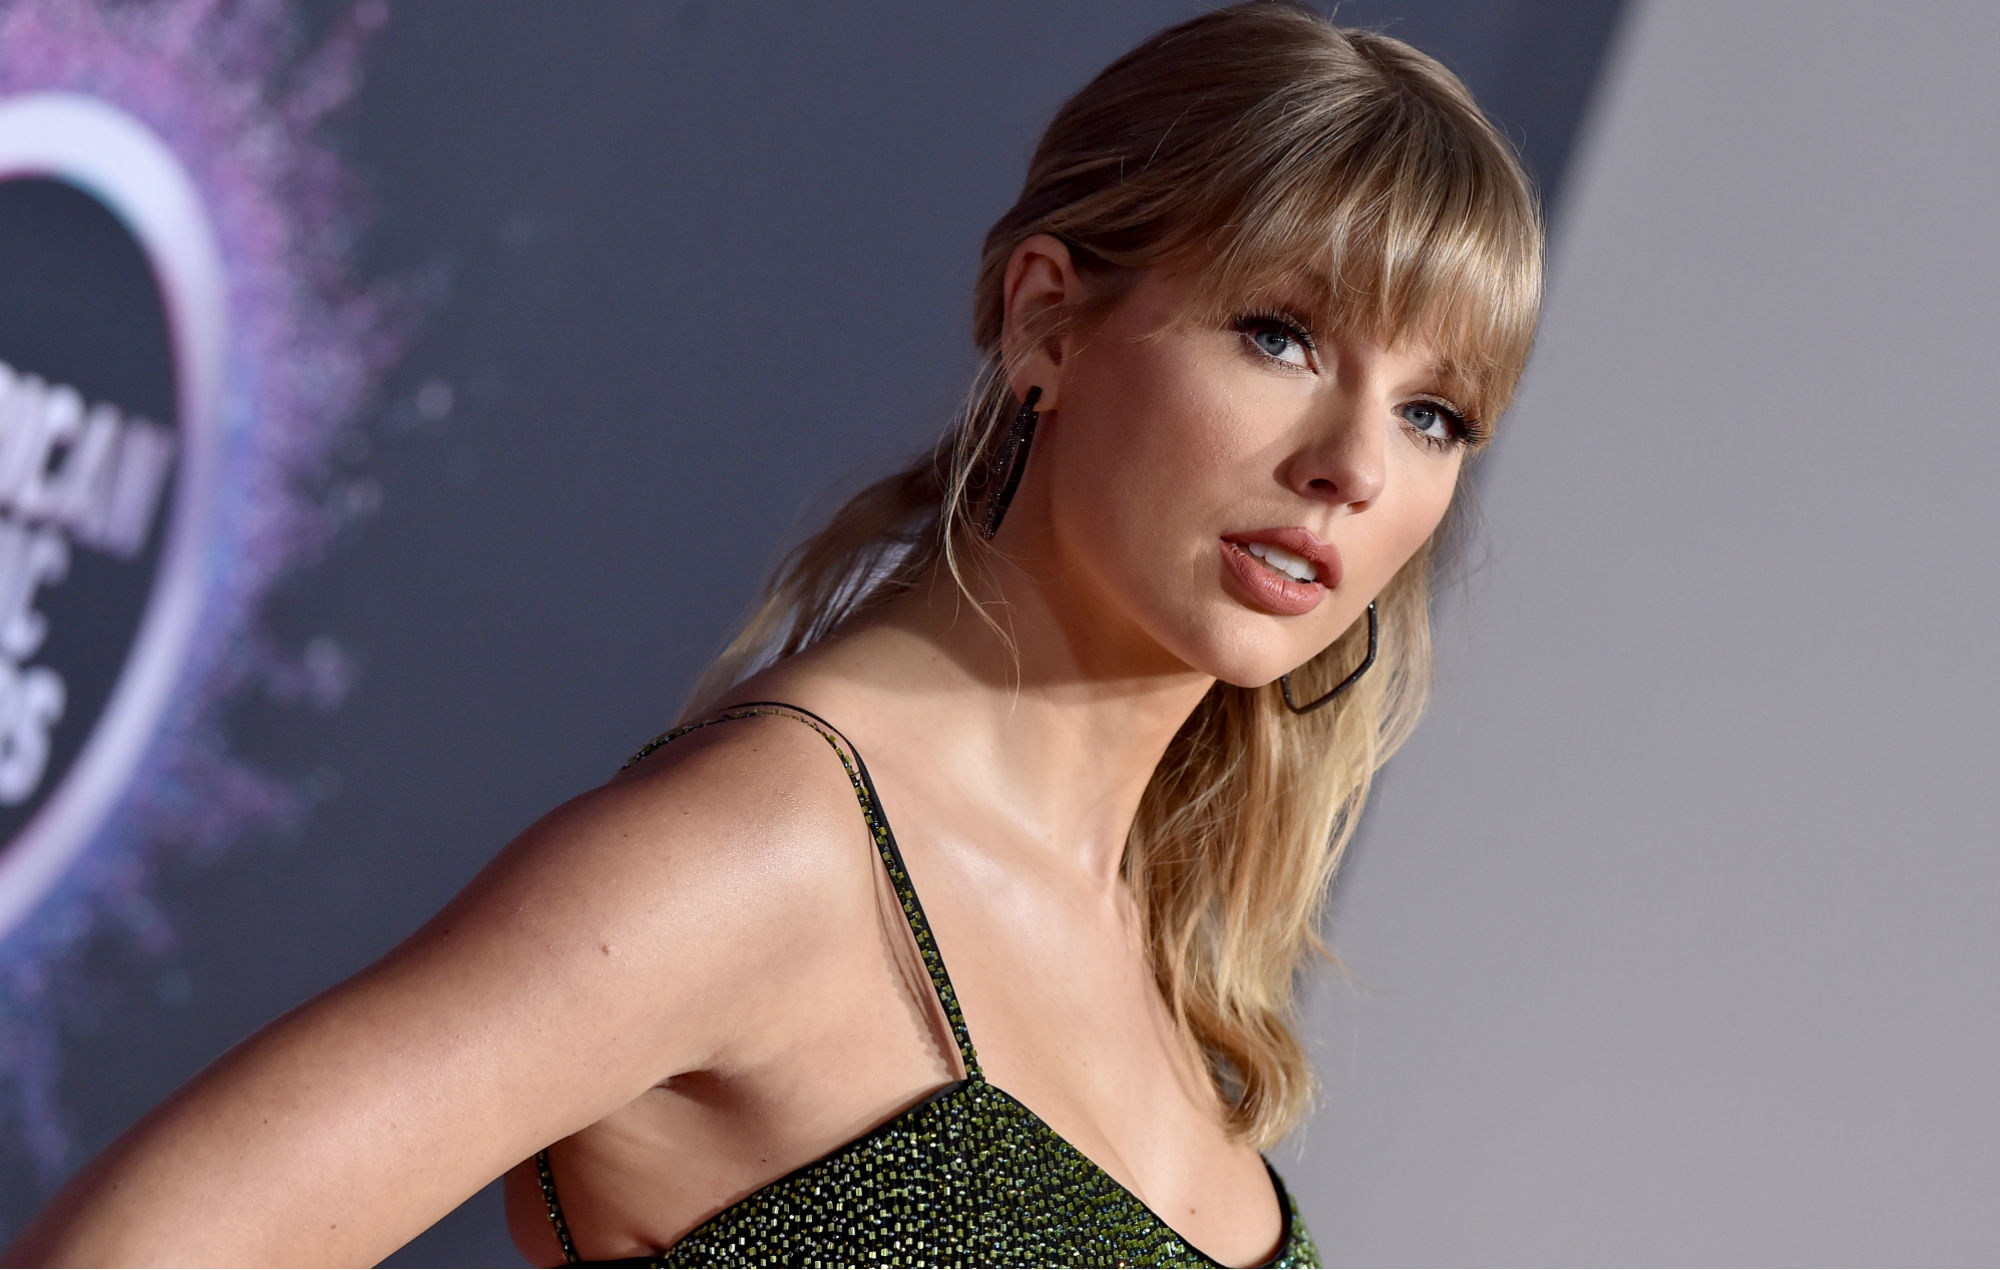 Taylor Swift opens up about battle with eating disorder